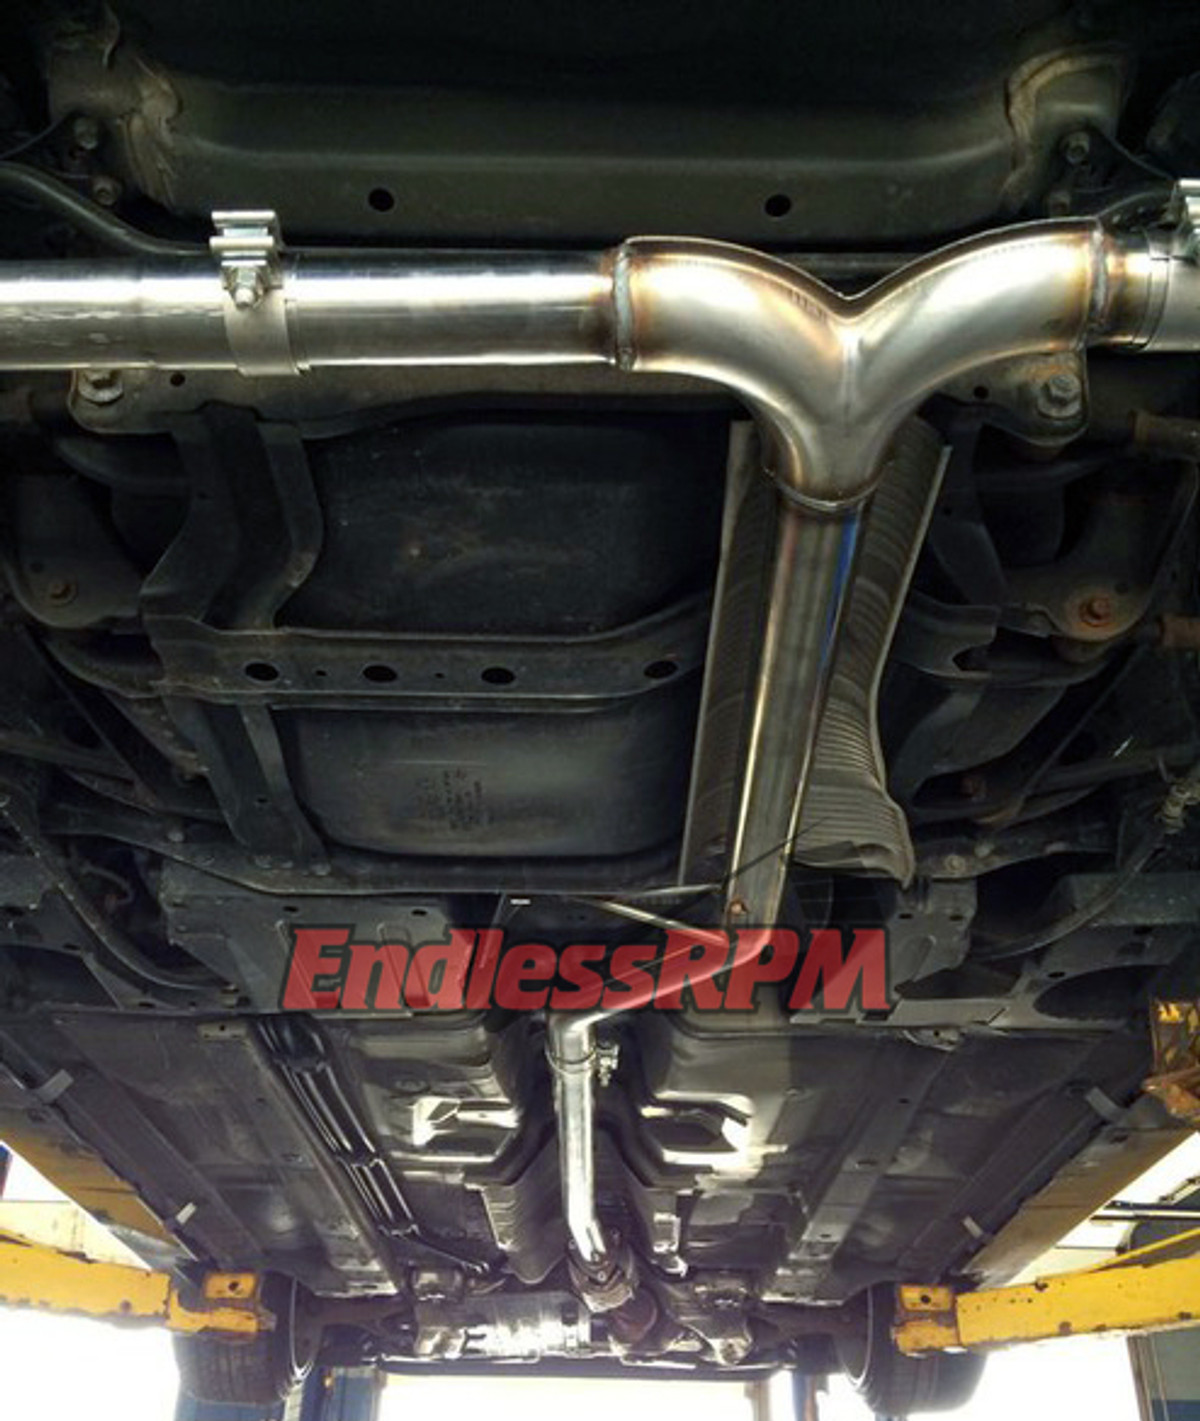 Endlessrpm 04 08 Acura Tl Performance Catback Exhaust System Single Tips